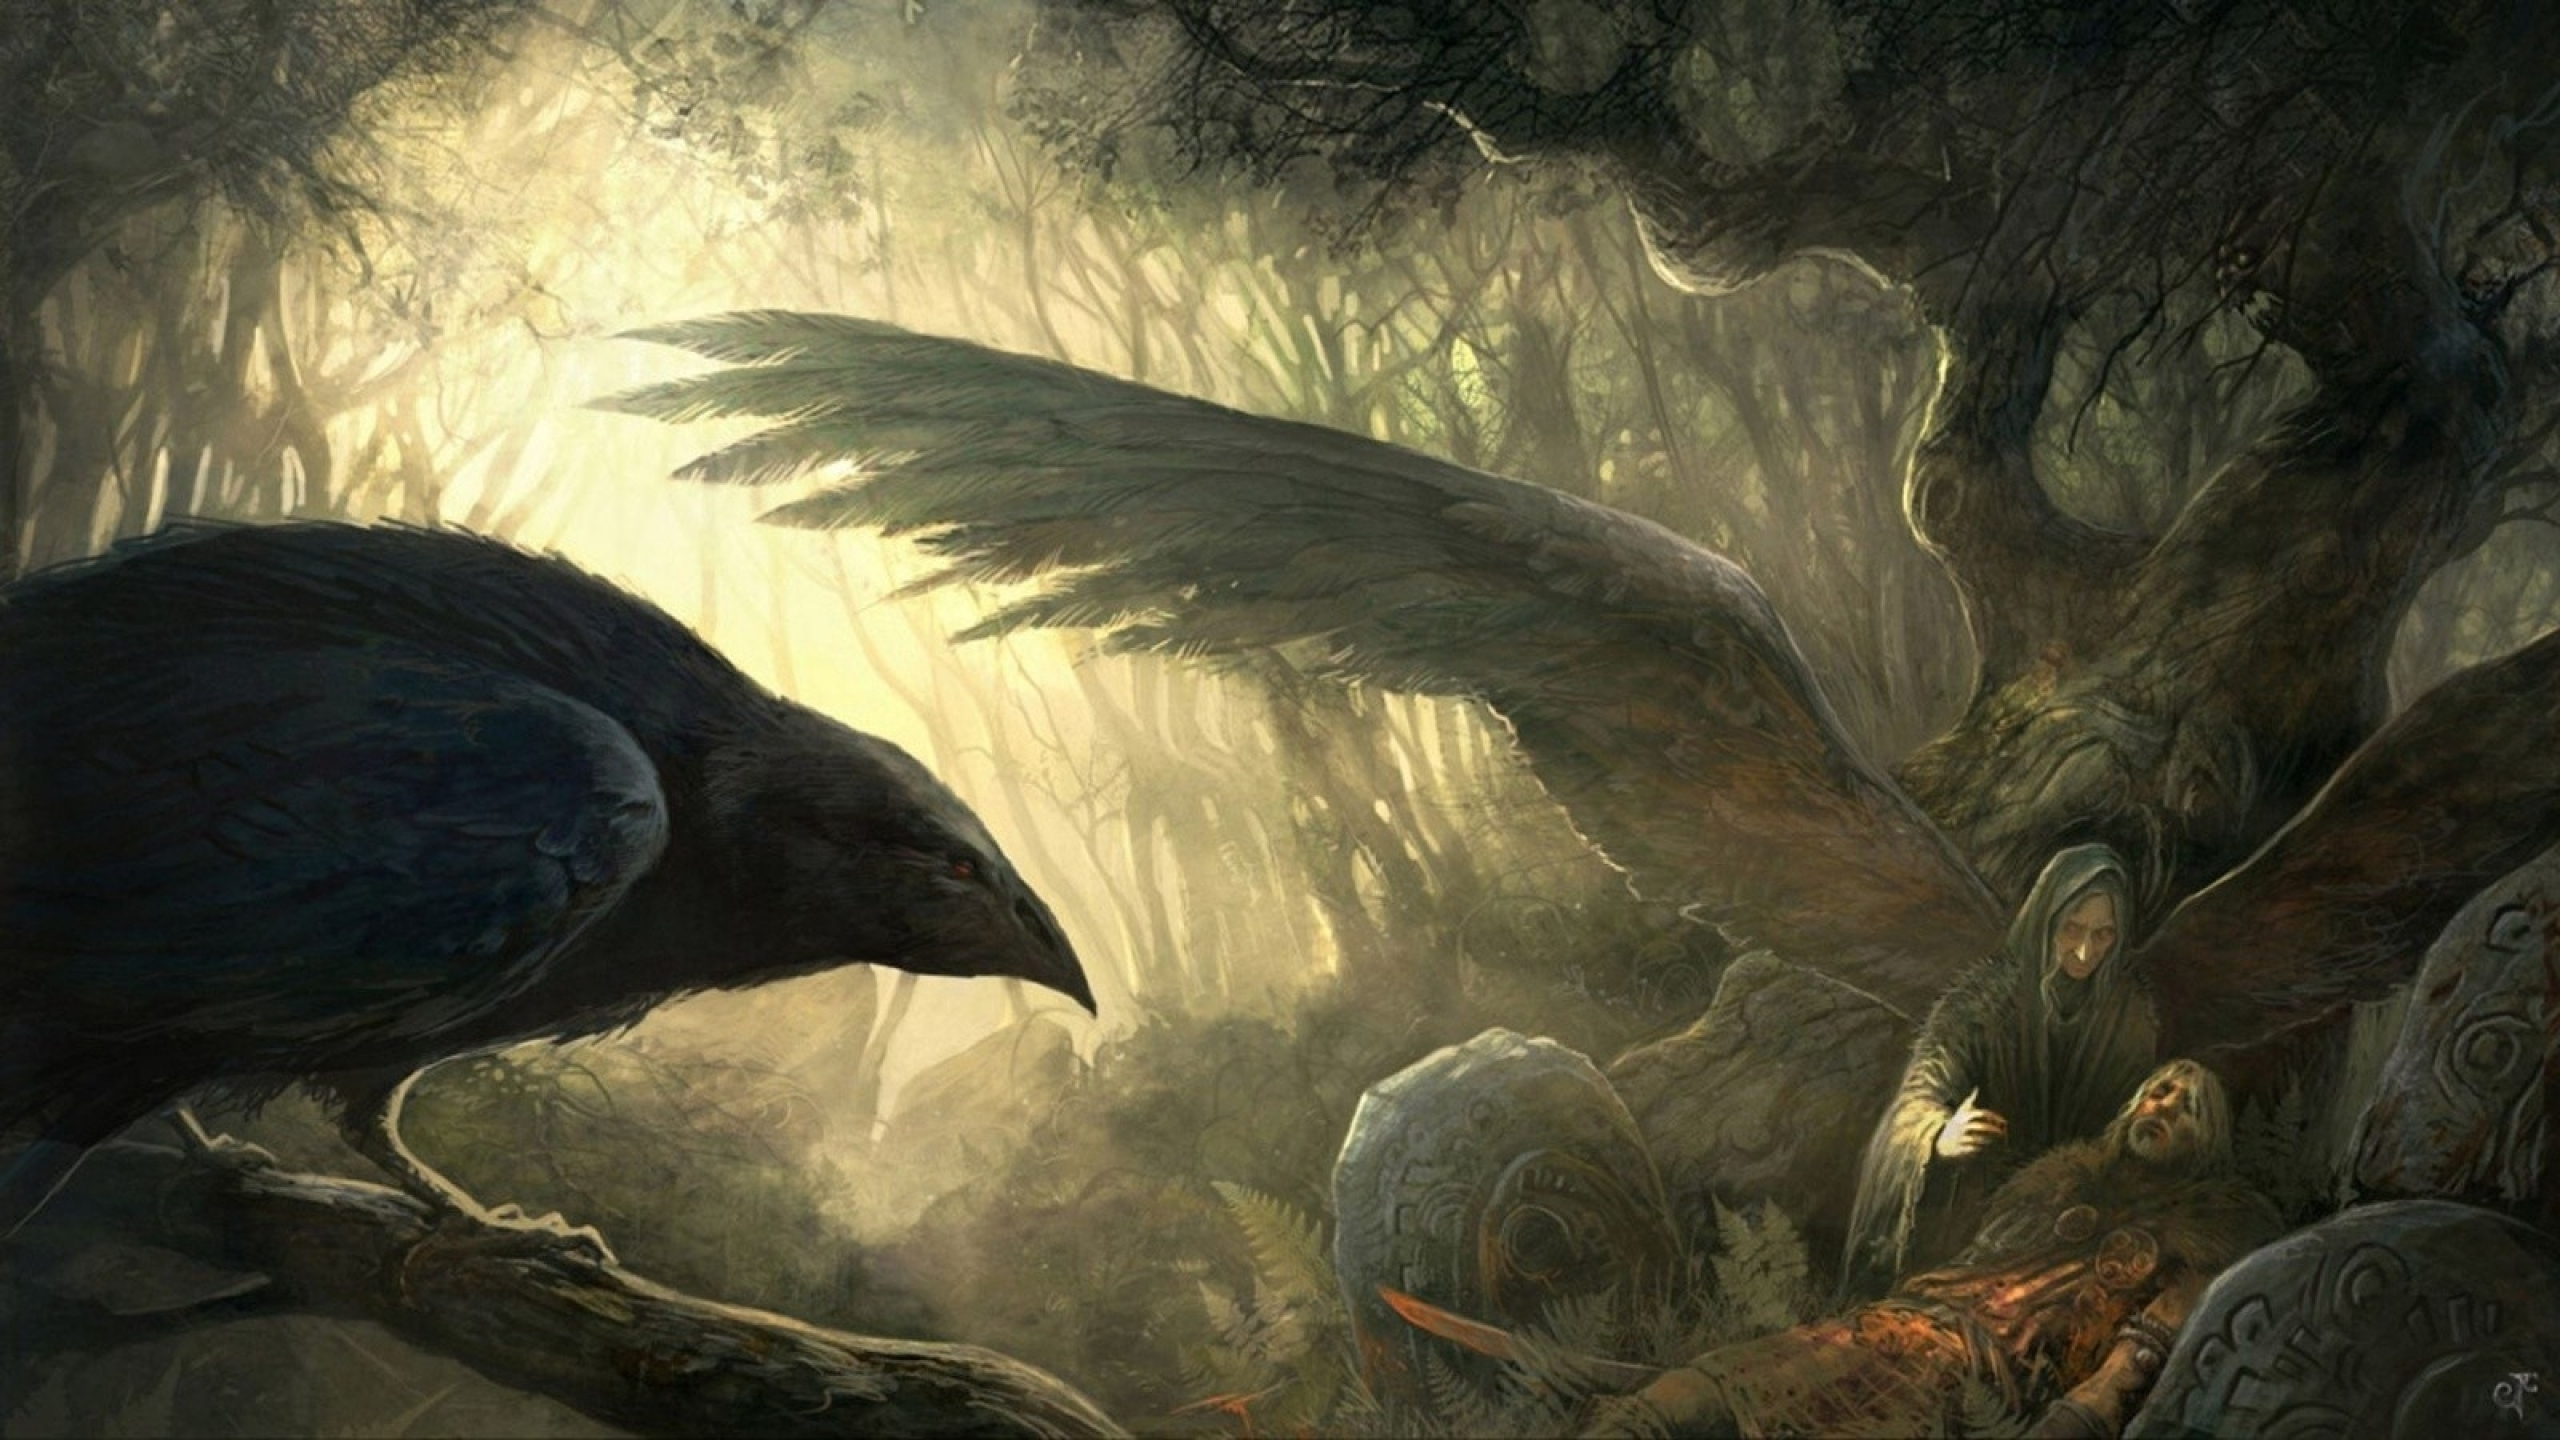 Wallpapers Download 2560x1440 wings death forest fantasy art goddess 2560x1440